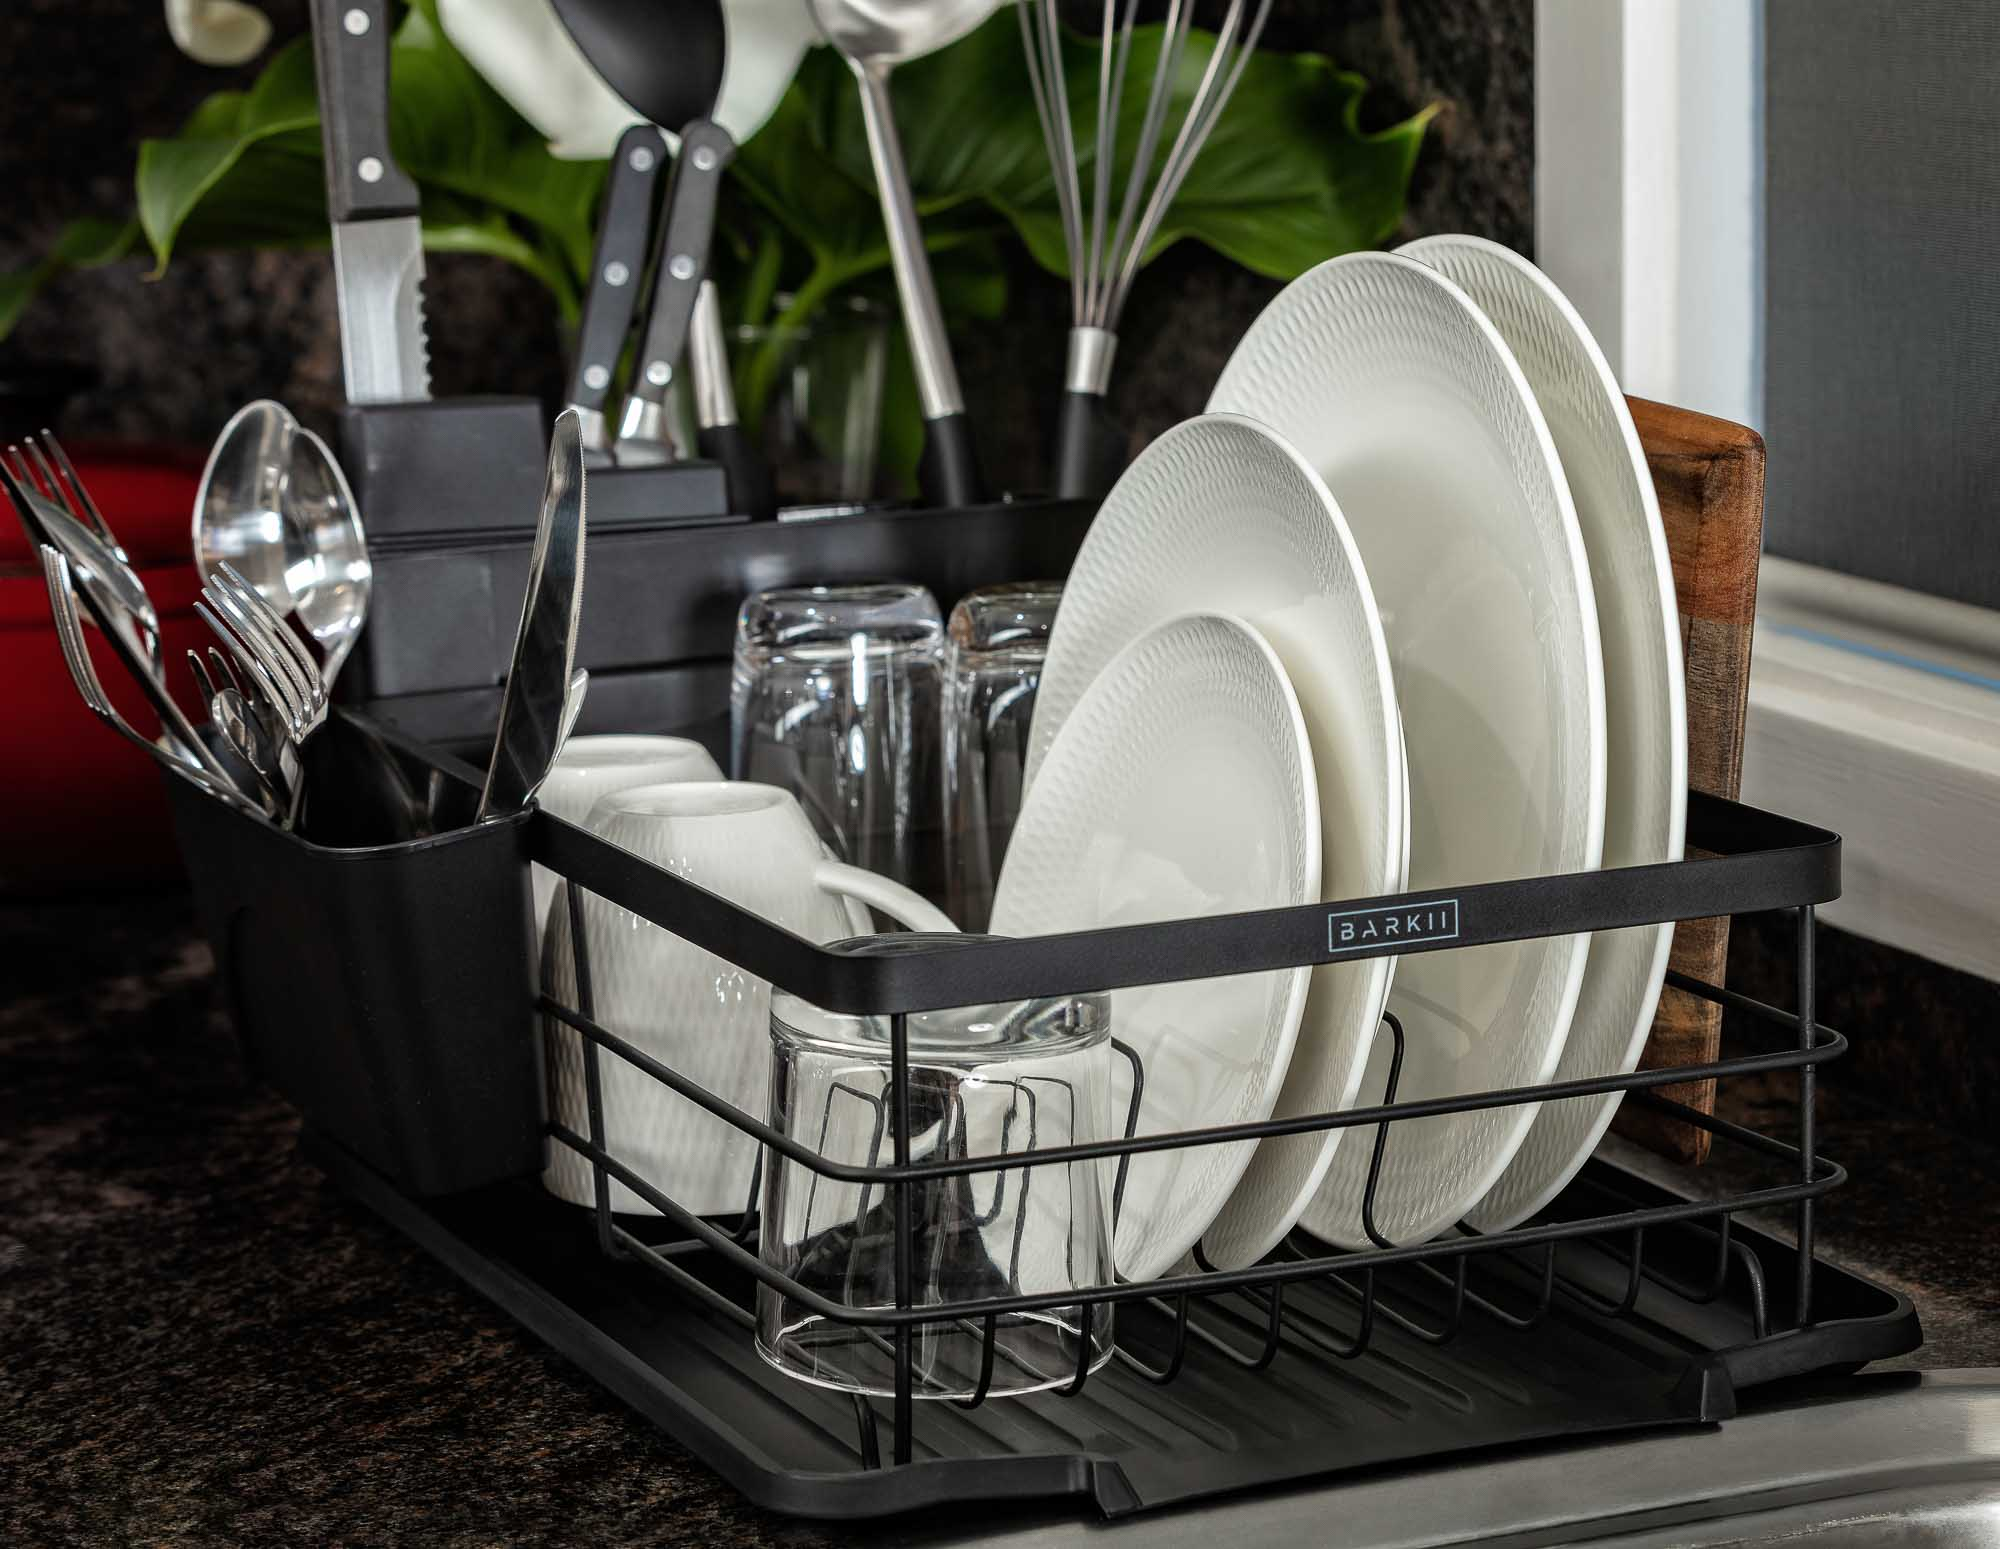 Dish Rack Barkii Product in use dry plates